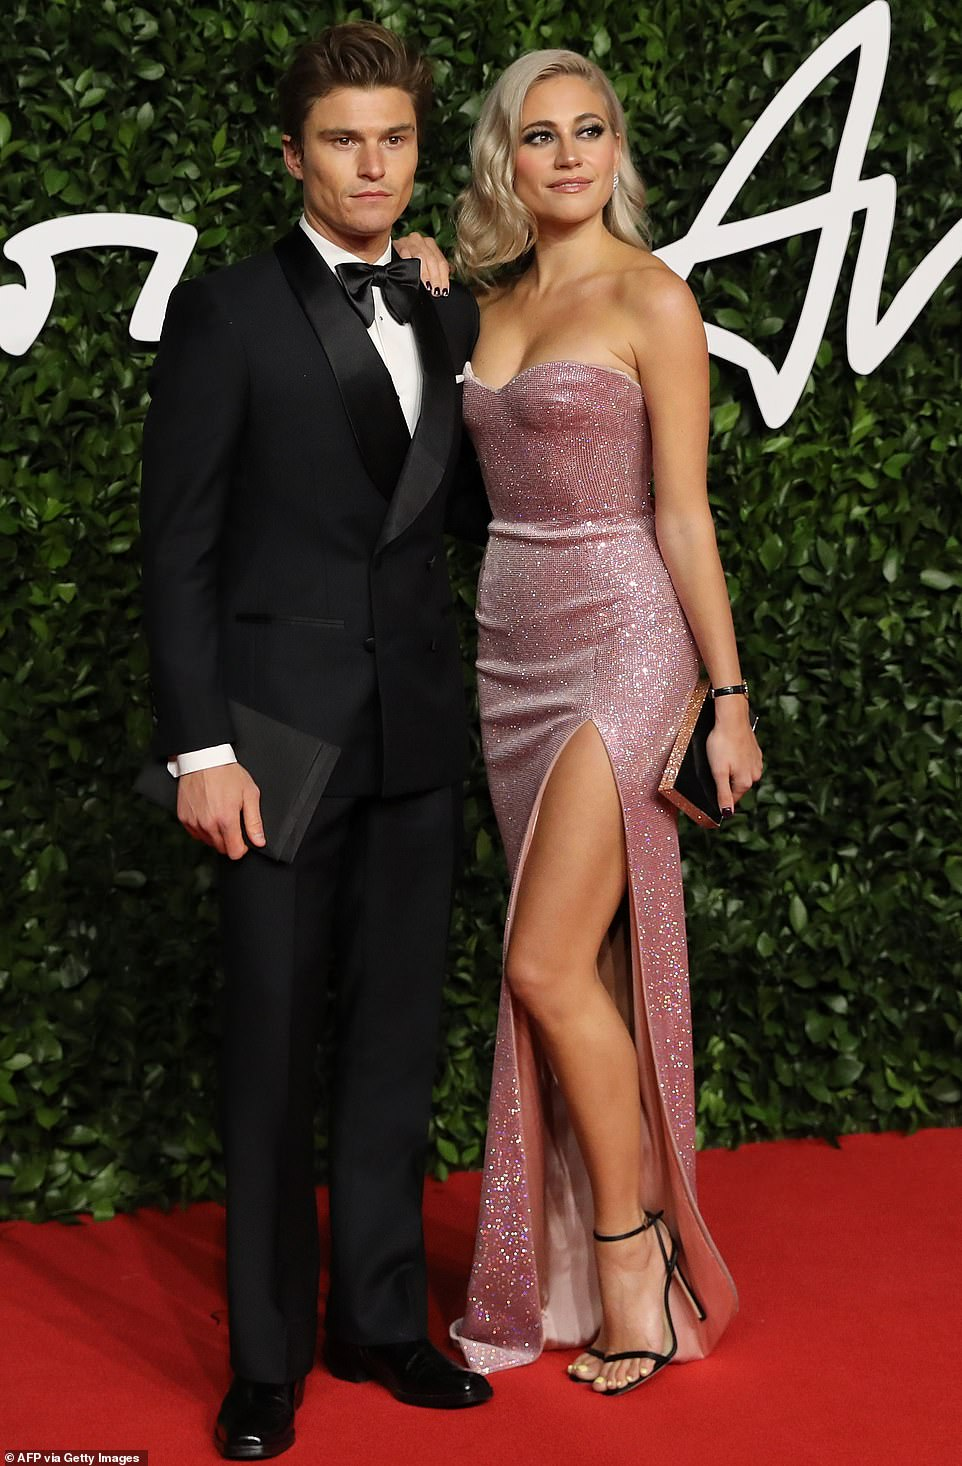 Model couple: English model Oliver Cheshire looked dapper in a bespoke Jack Davison suit, while his fiancée Pixie Lott wore a custom Philosophy di Lorenzo Serafini strapless Swarovski crystal embellished gown